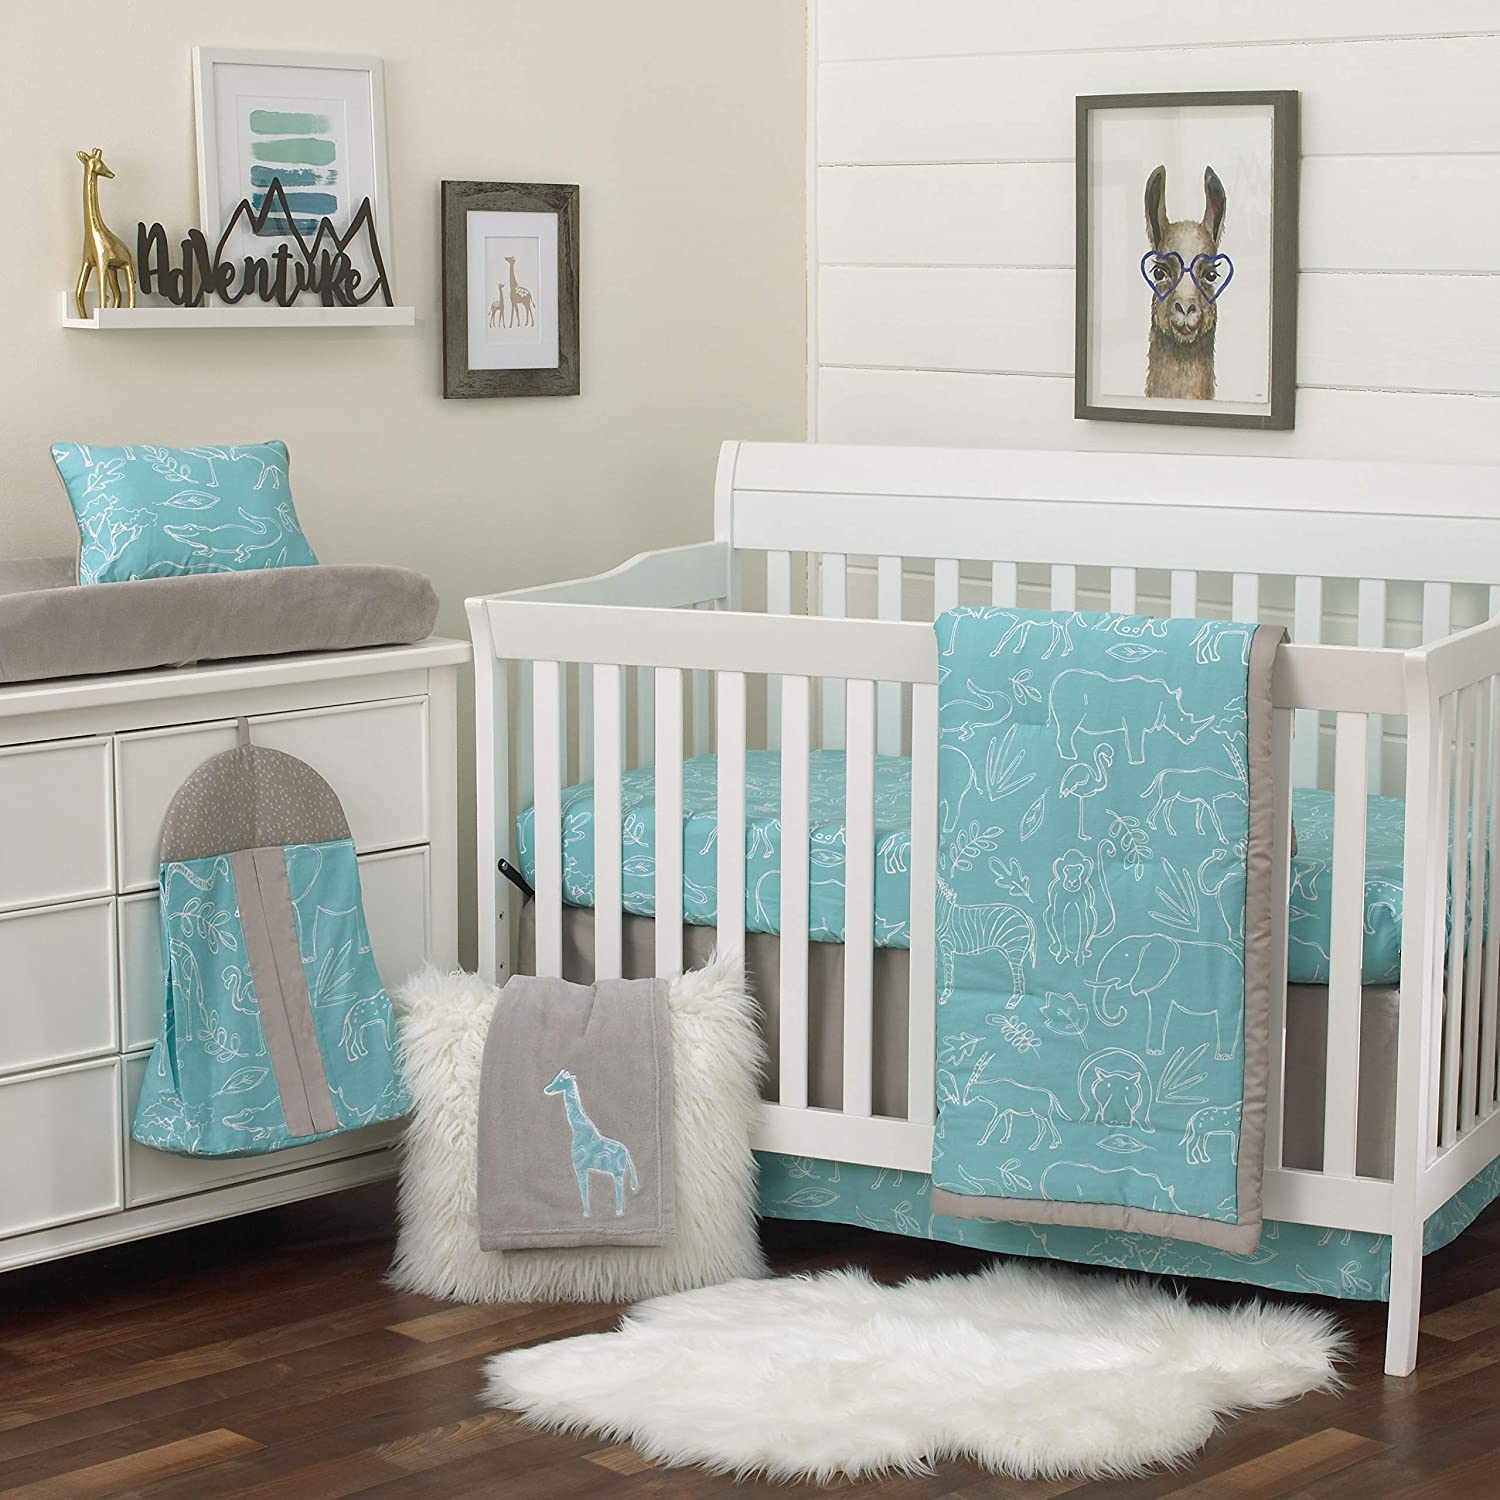 NoJo Dreamer Modern Safari Blue 8 Piece Nursery Crib Bedding Set, Turquoise/Grey